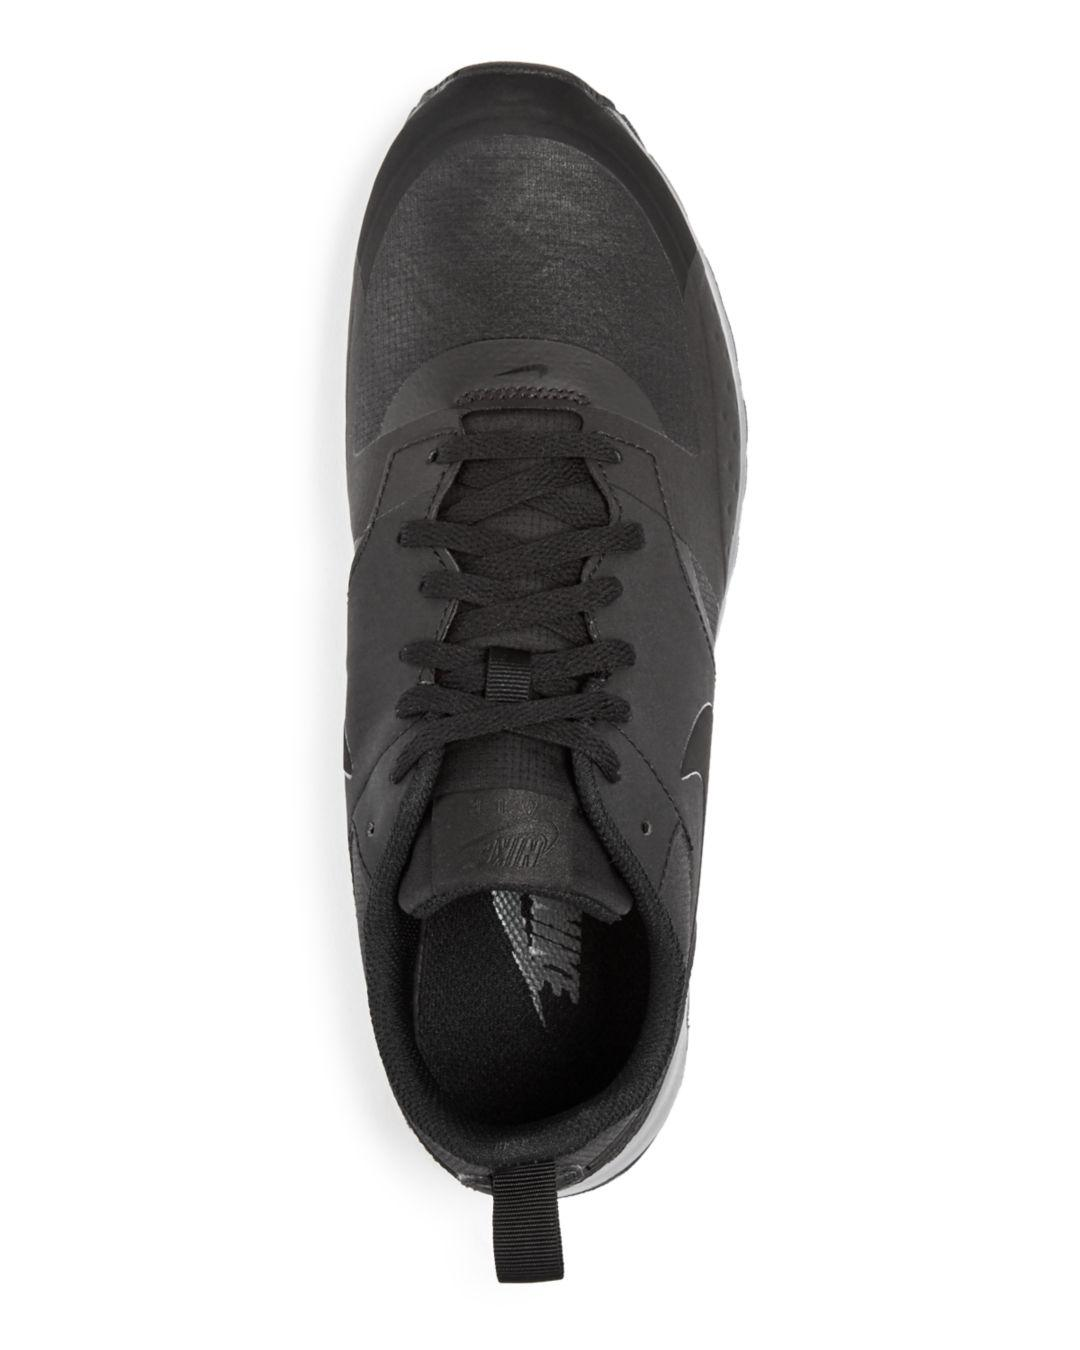 615e1dfd7ef Lyst - Nike Men s Air Max Vision Premium Lace Up Sneakers in Black ...